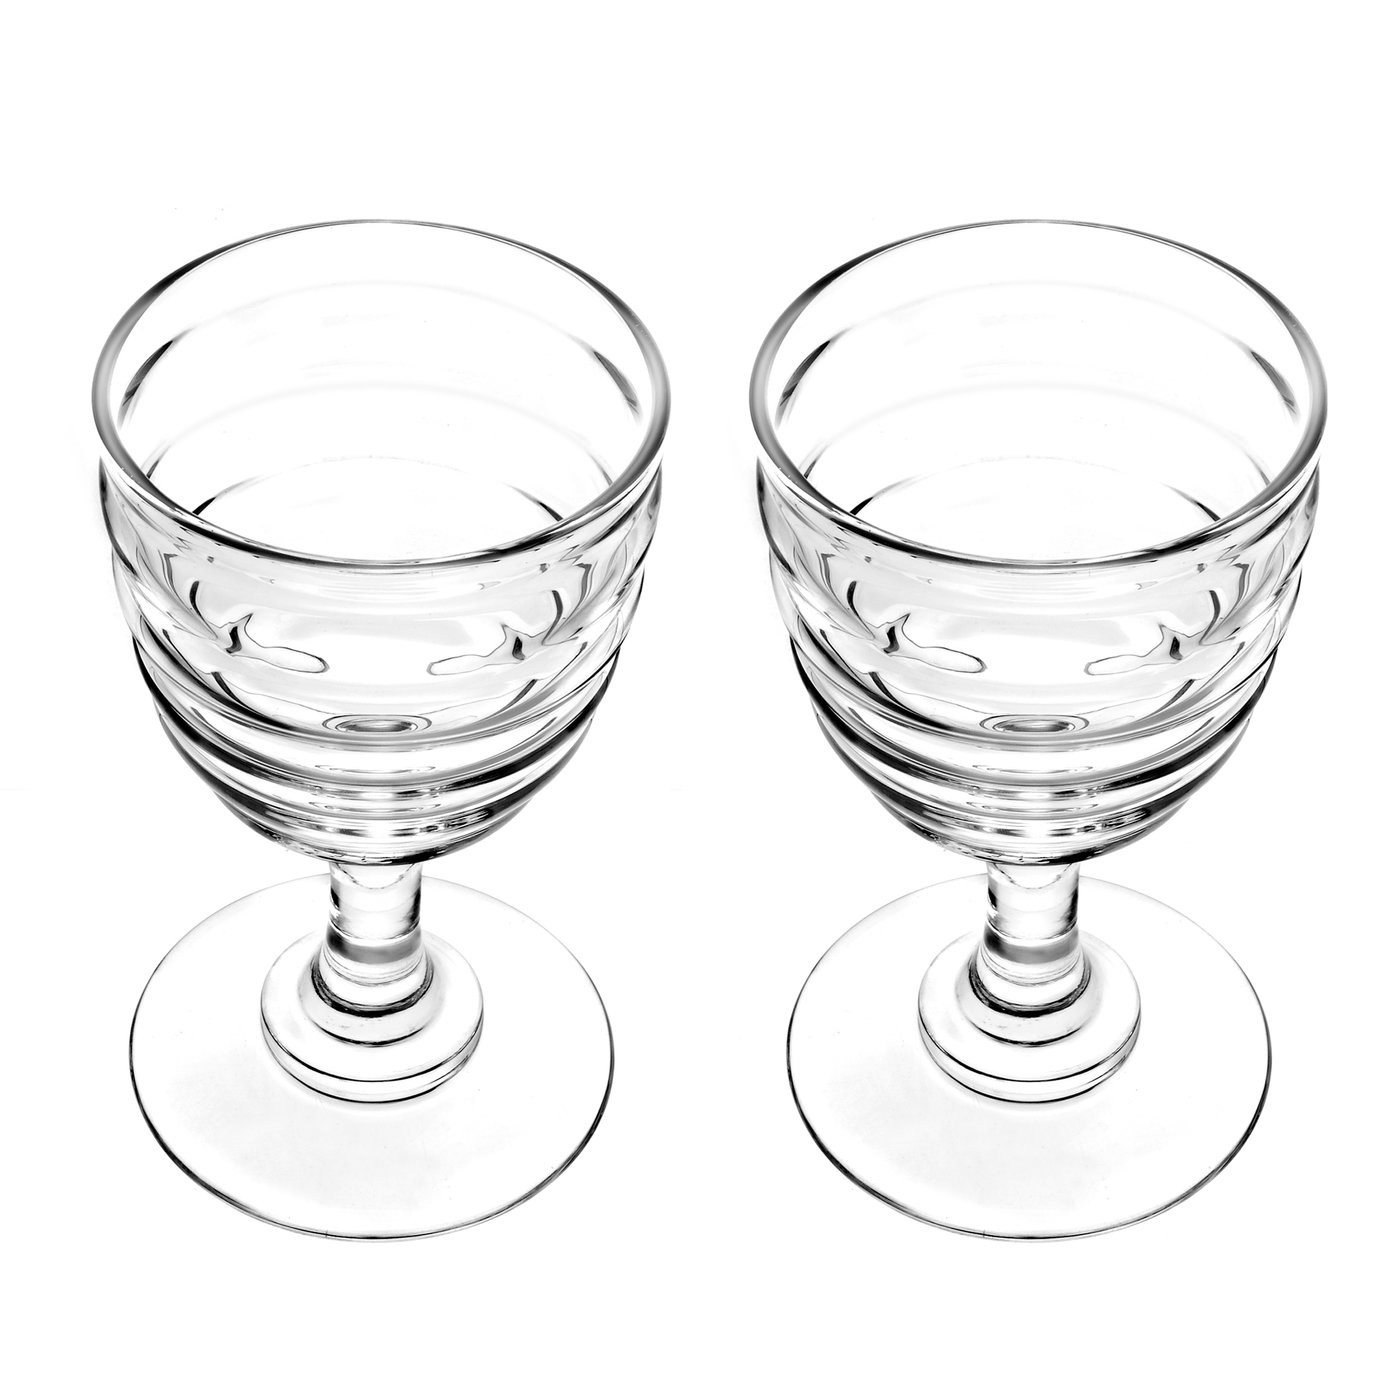 Sophie Conran Large Wine Glasses 2 29 99 You Save 13 01